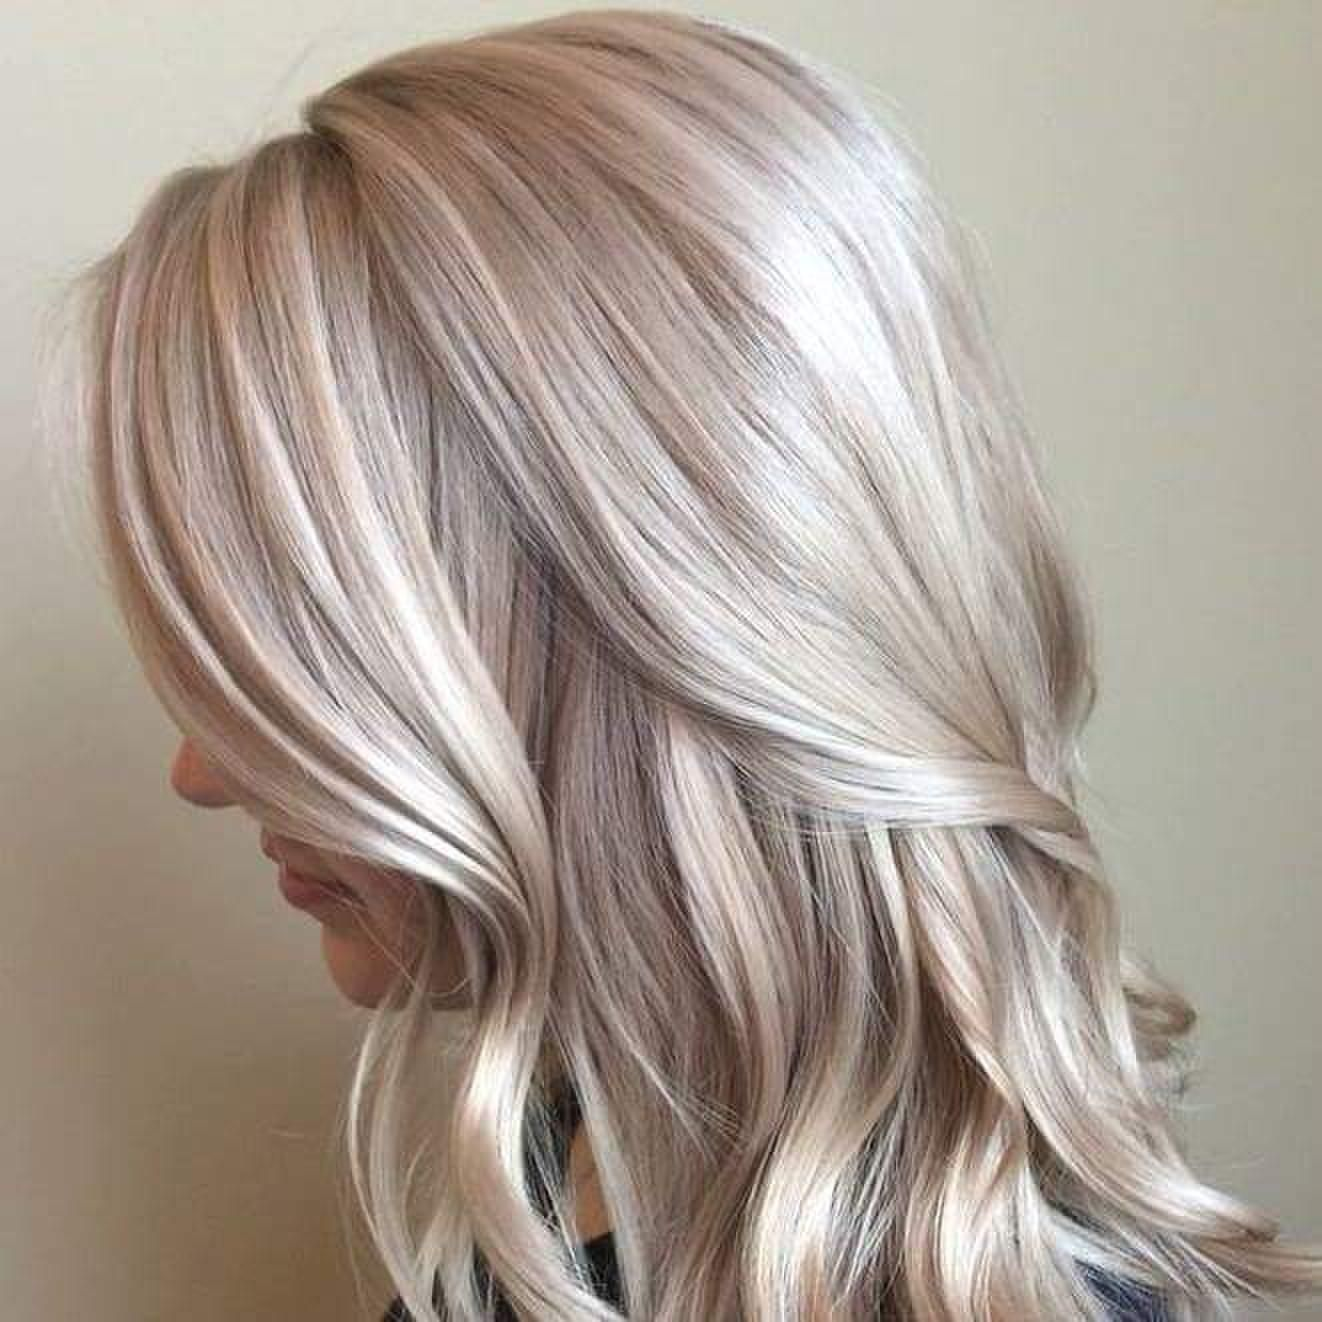 Amazing Hair Colour With Mother Of Pearl Tint 2015 Hair Color